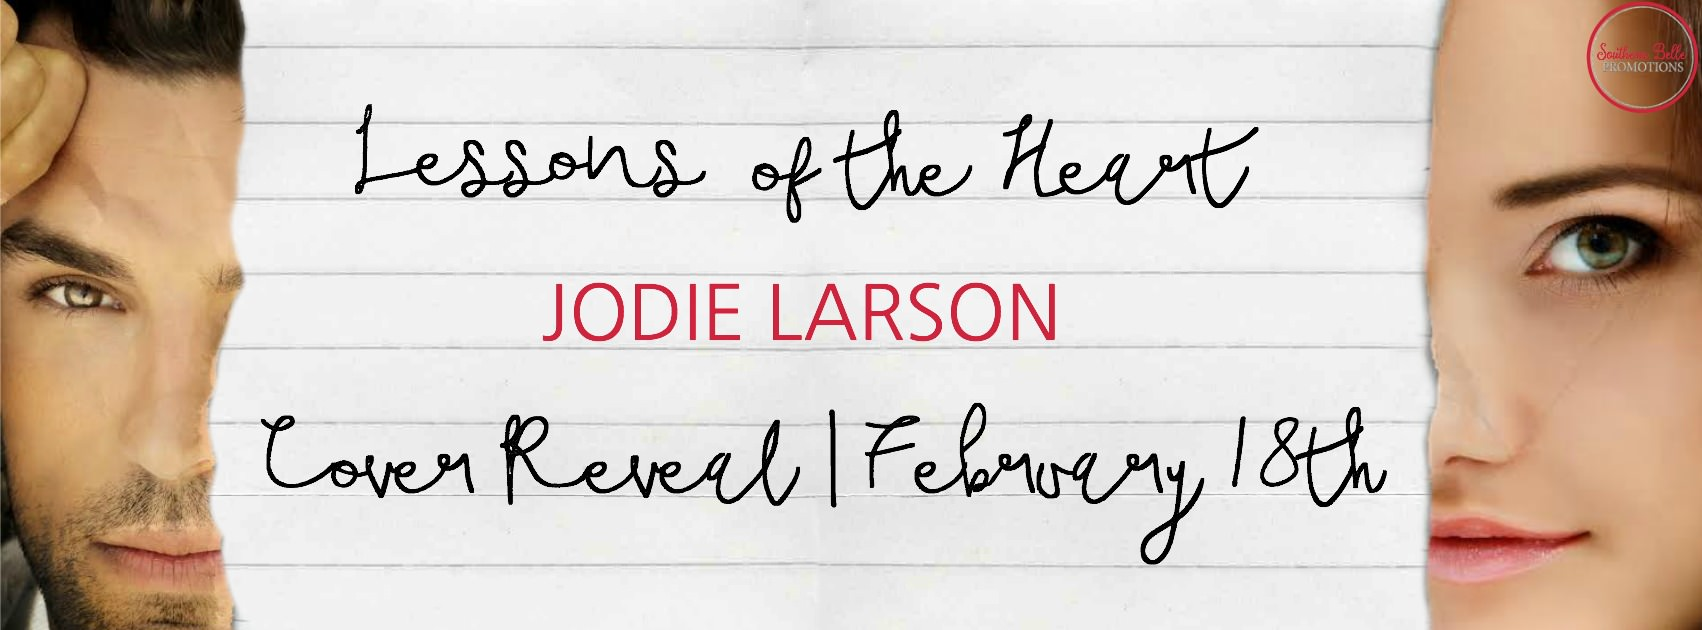 Lessons of the Heart by Jodie Larson – Cover Reveal!